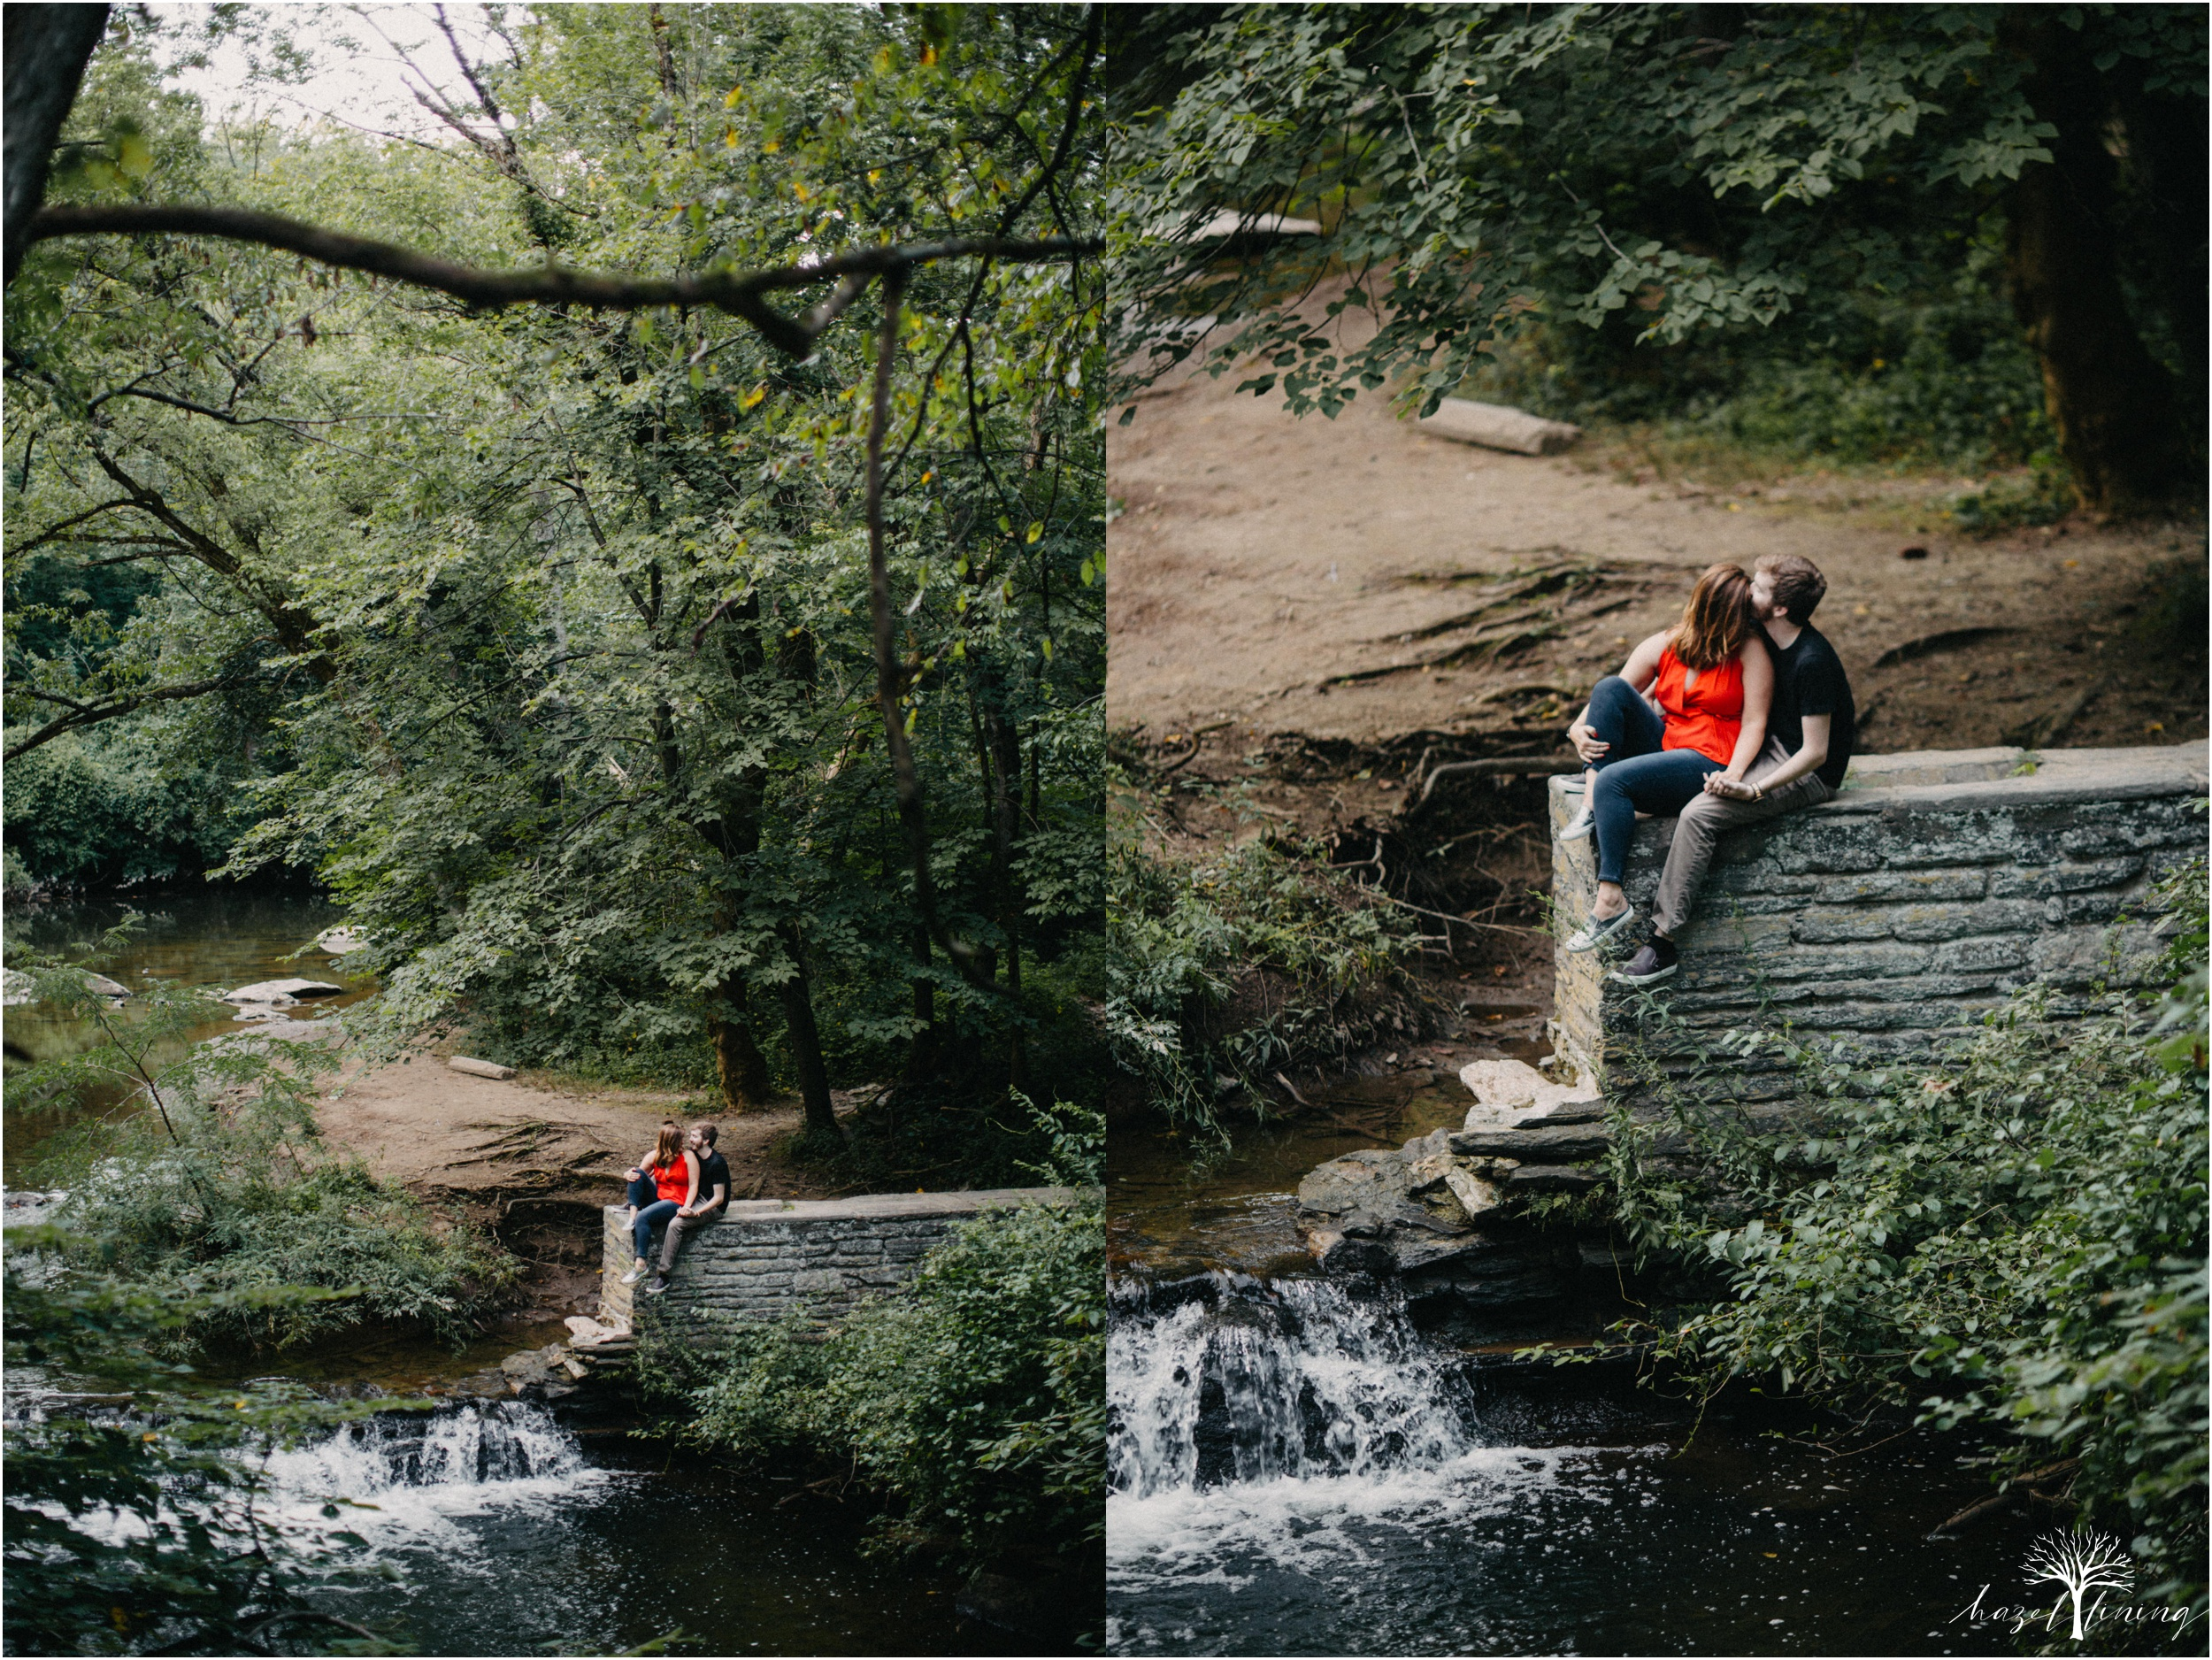 paige-kochey-chris-graham-valley-green-wissahickon-park-philadelphia-summer-engagement-session-hazel-lining-photography-destination-elopement-wedding-engagement-photography_0048.jpg